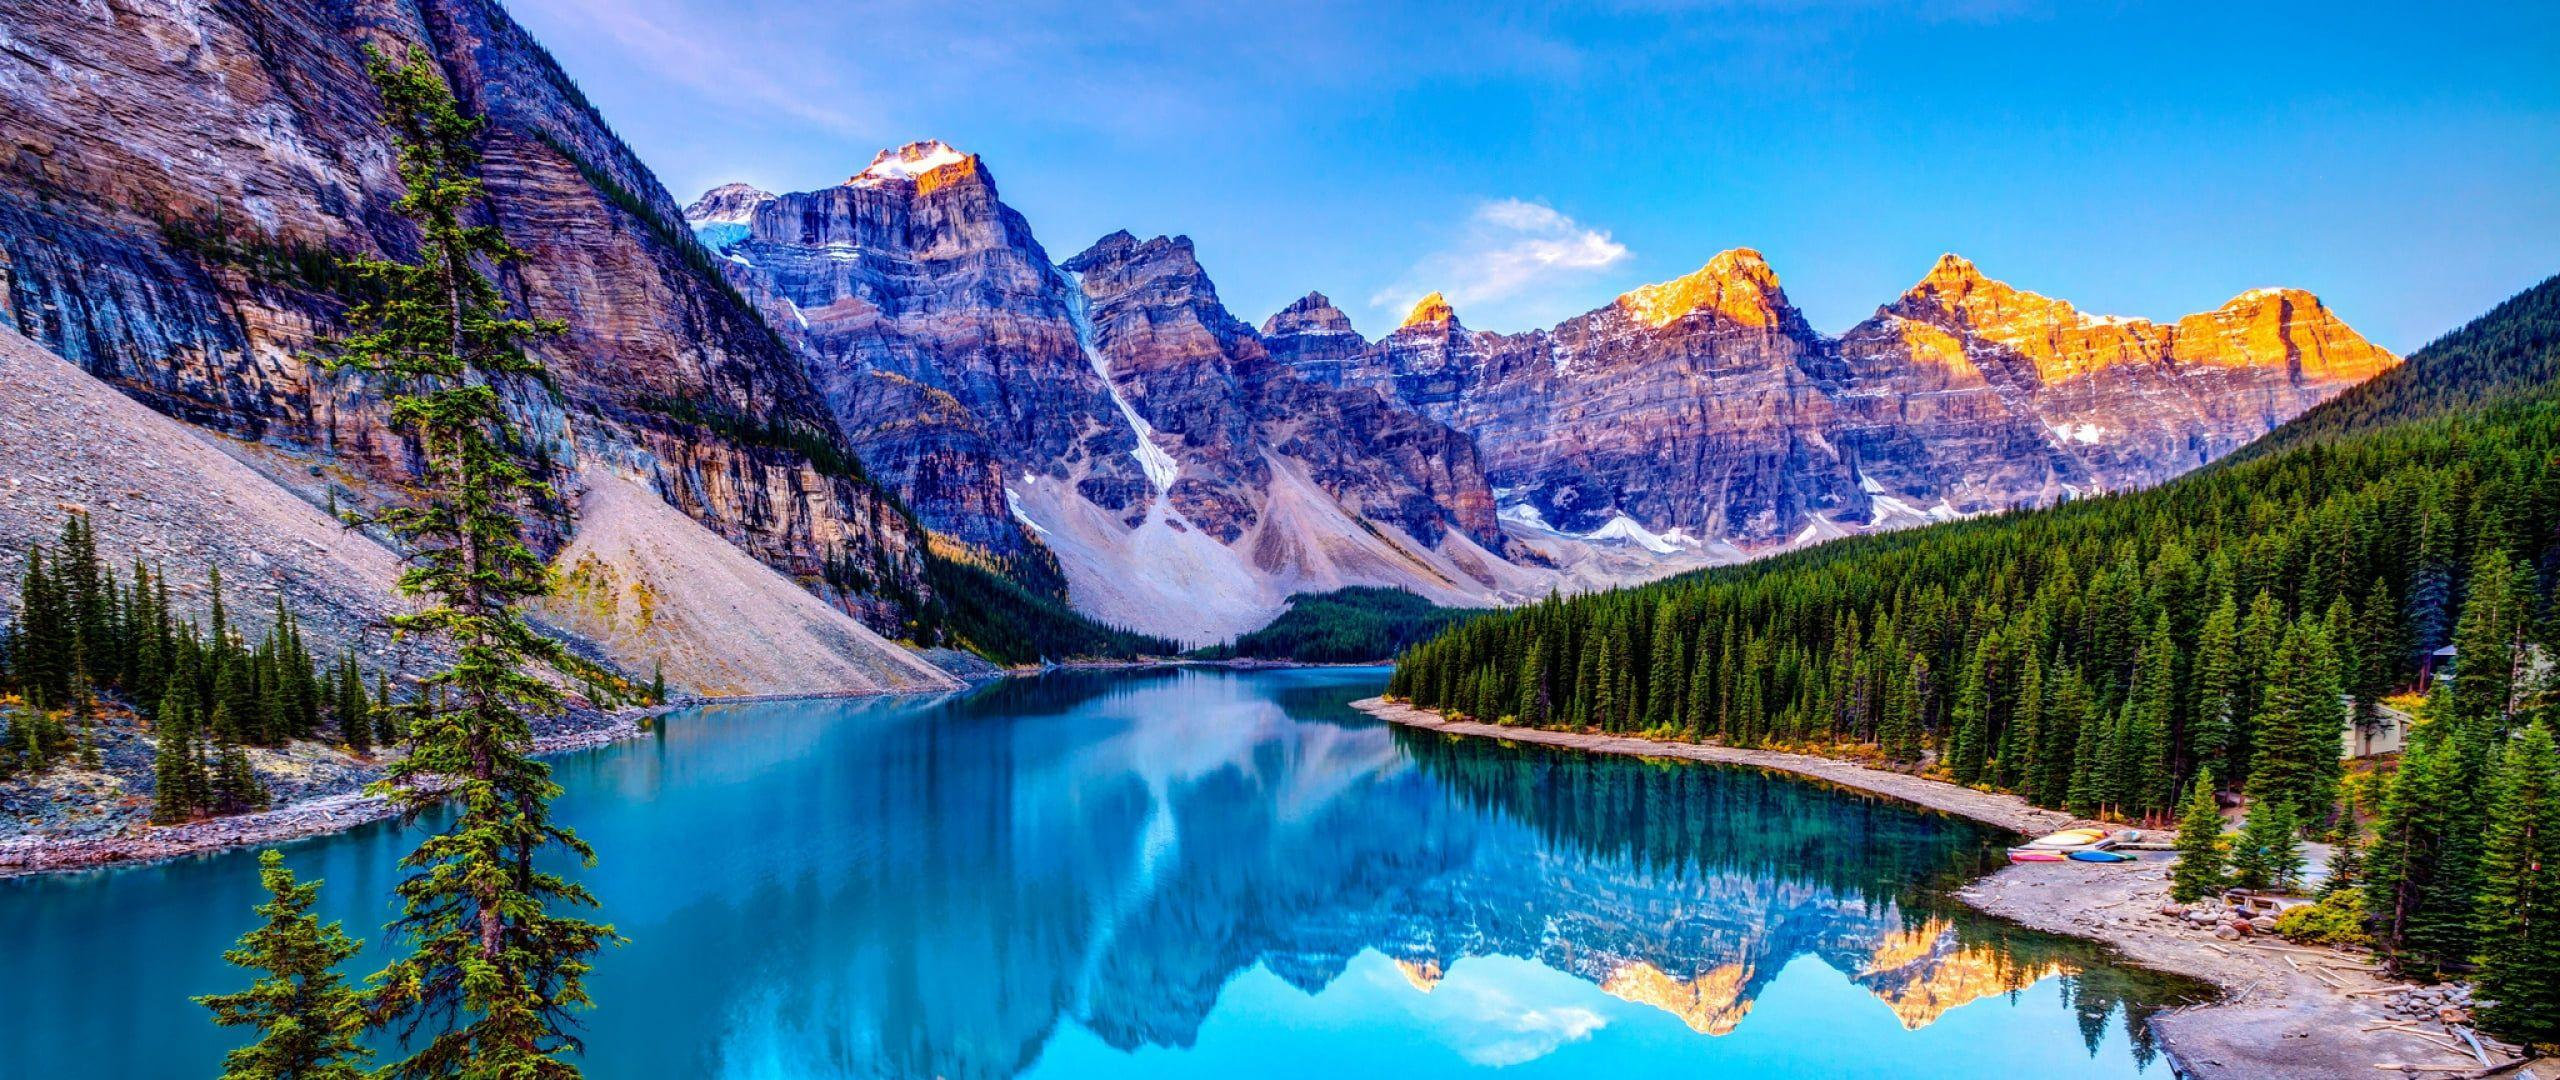 Banff National Park, Canada HD wallpapers